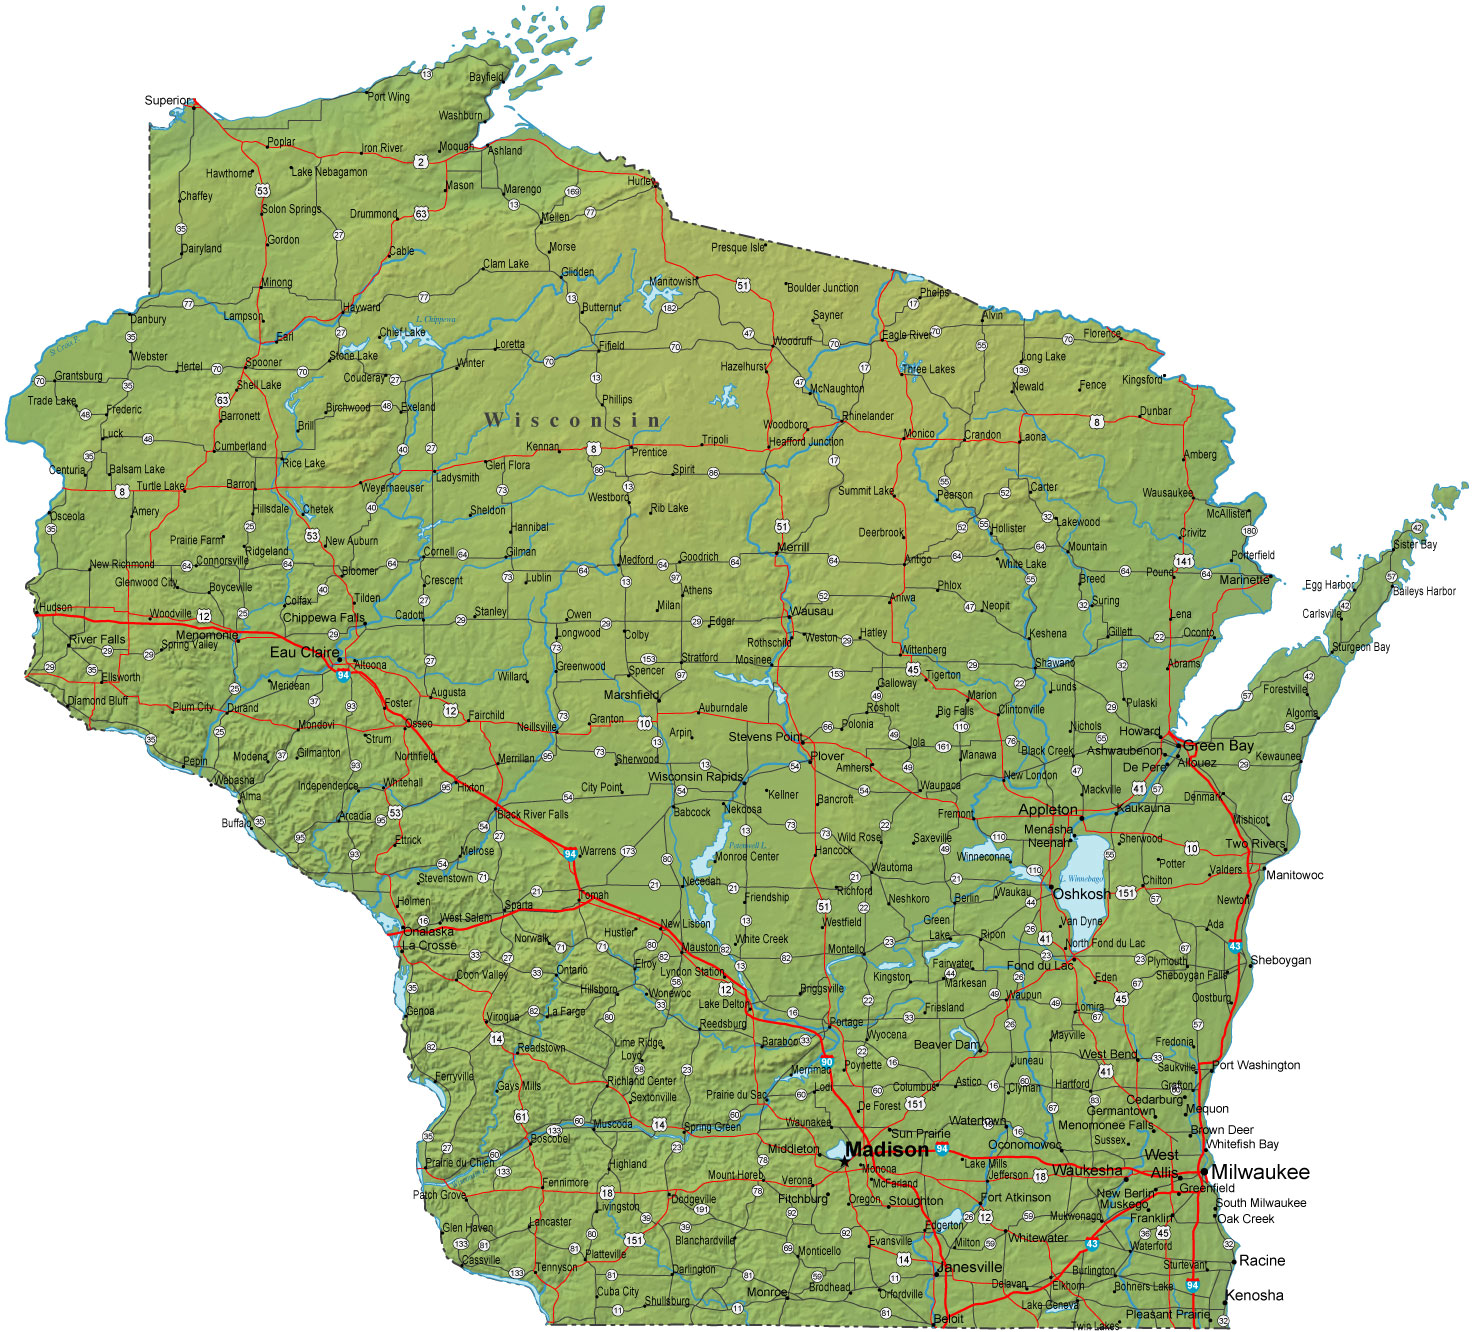 http://www.wisconsin-map.org/wisconsin-map.jpg